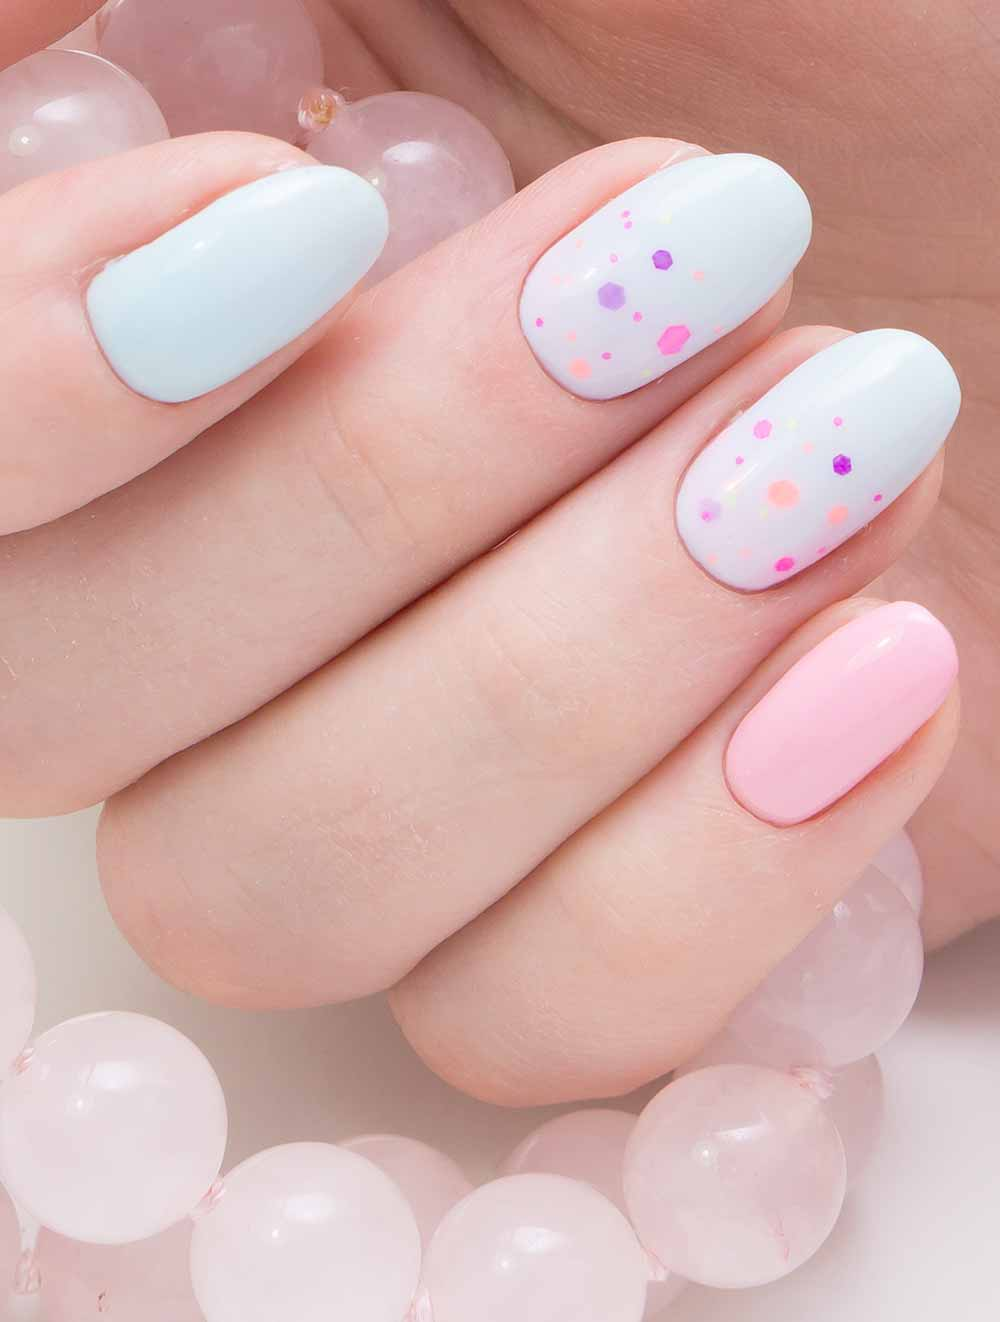 Trends in nail art 2018